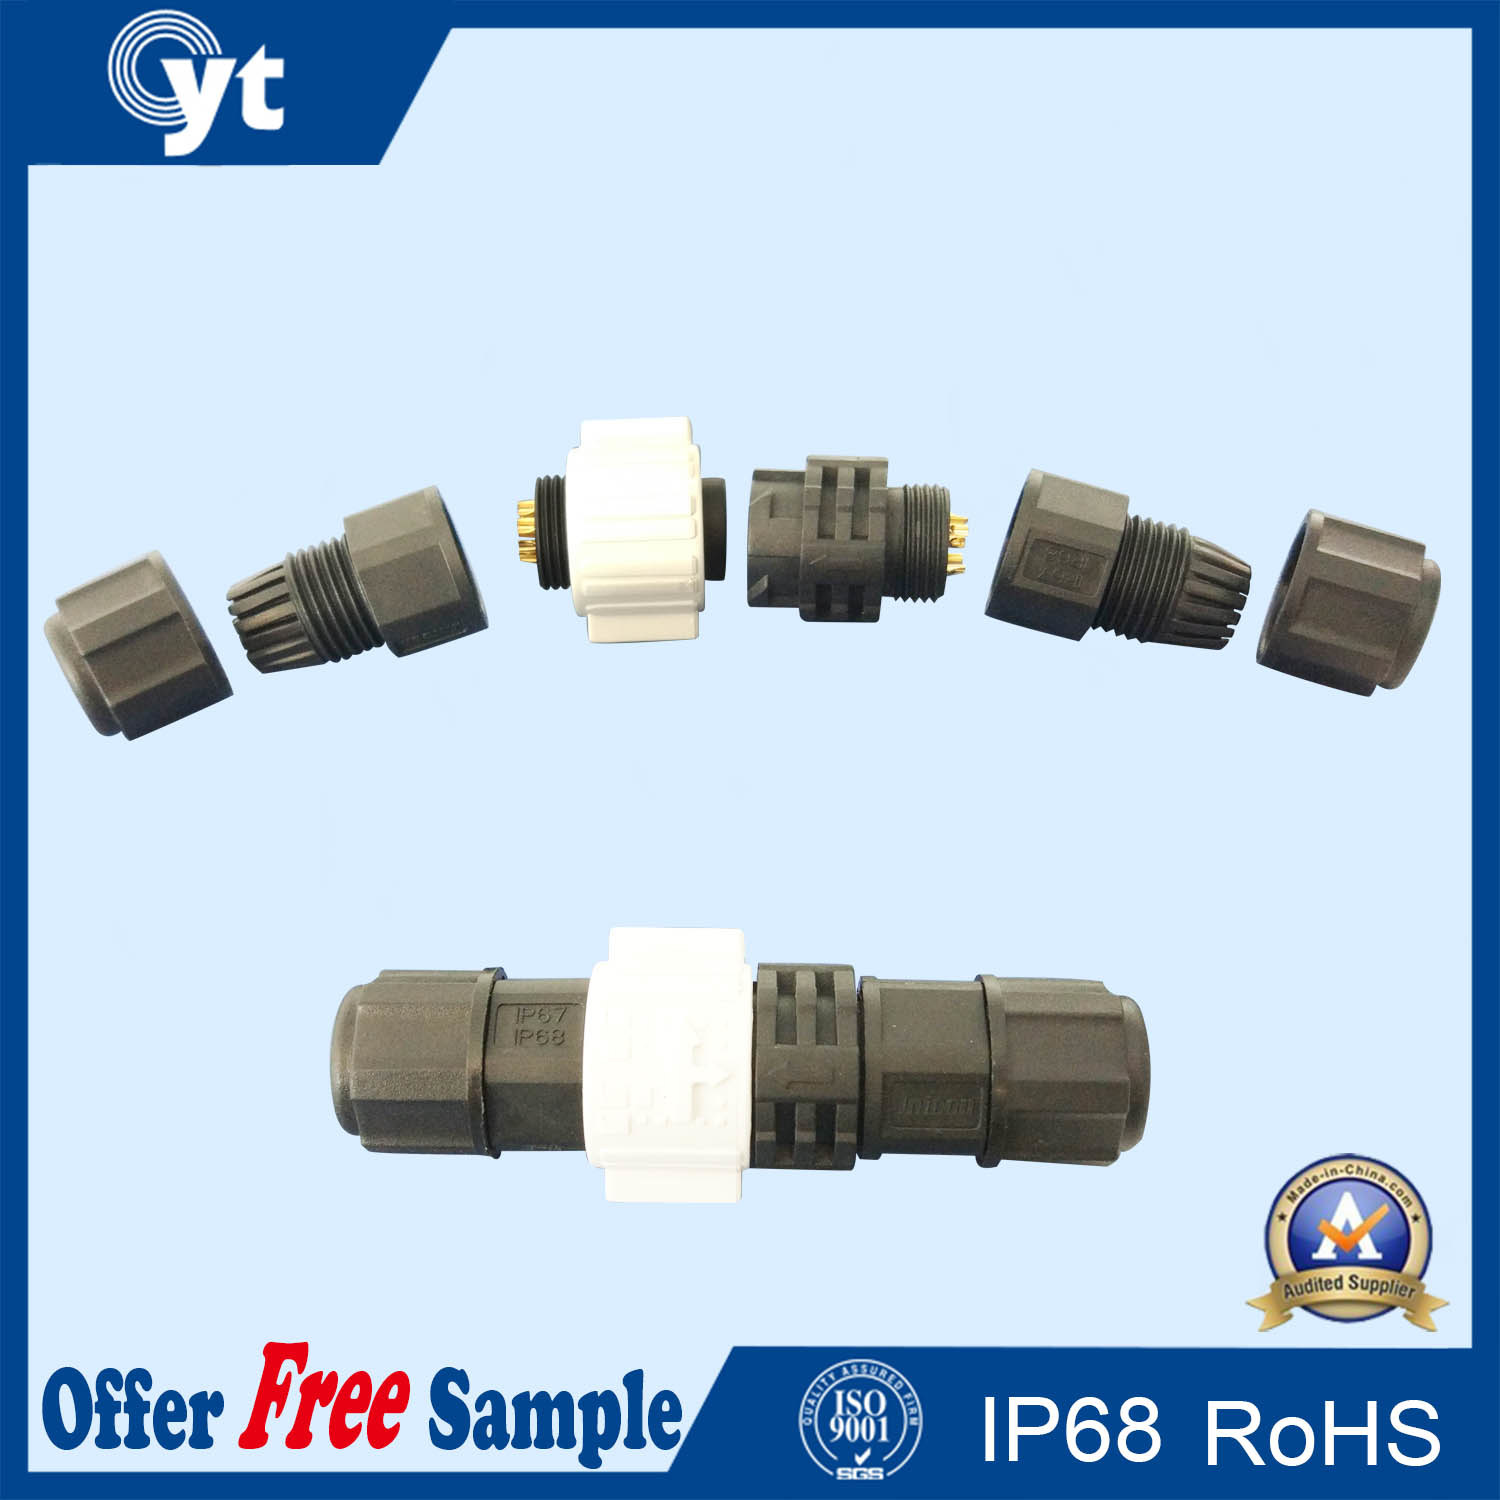 Cyt Circular Connector with Multi-Core From 2 to 8 Pins